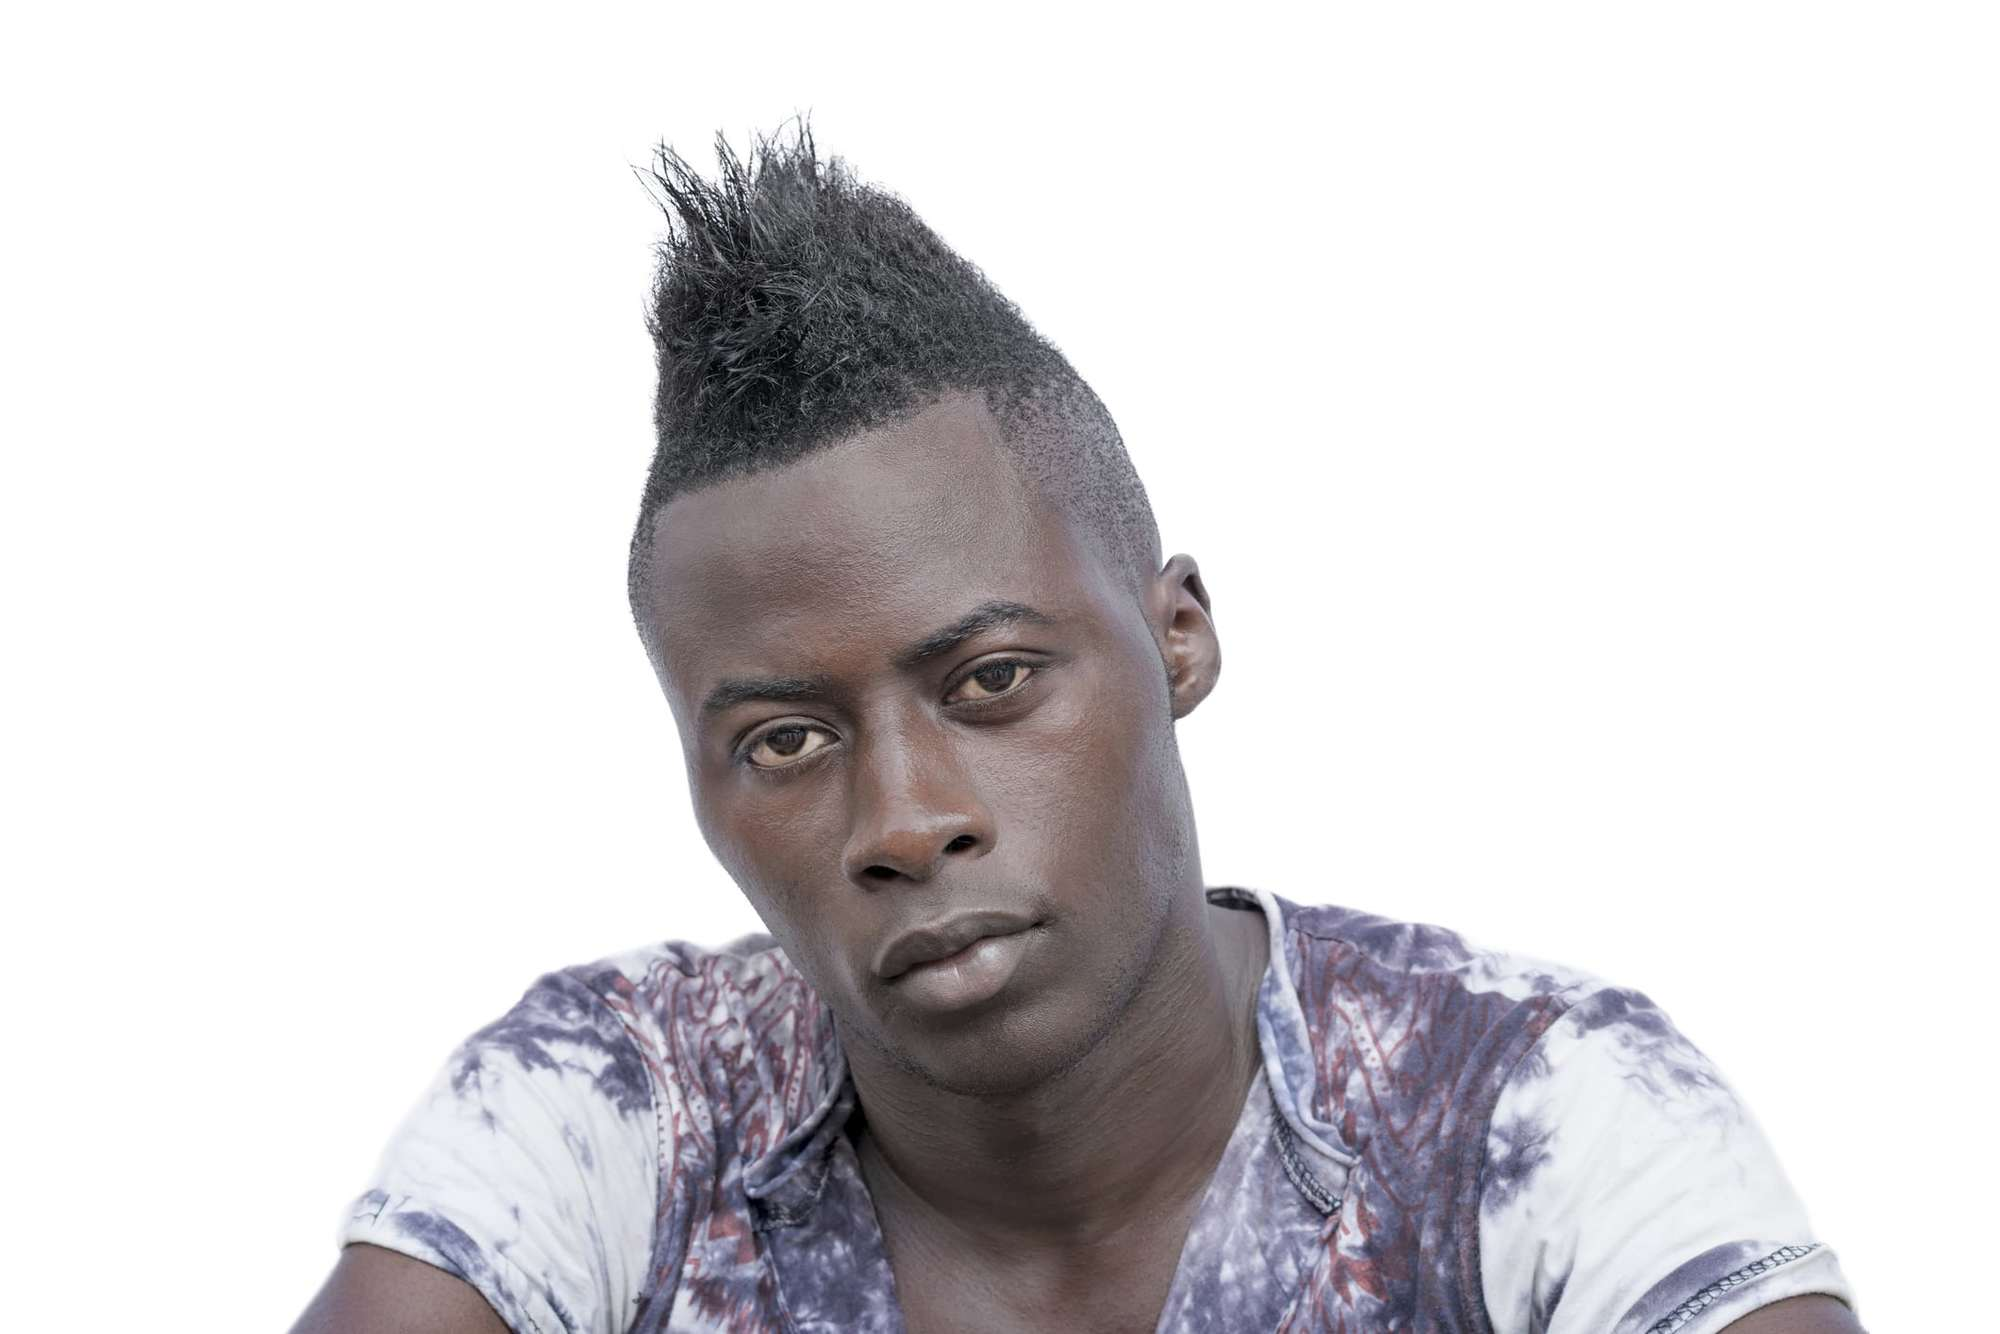 mohawk fade spiked up natural hair